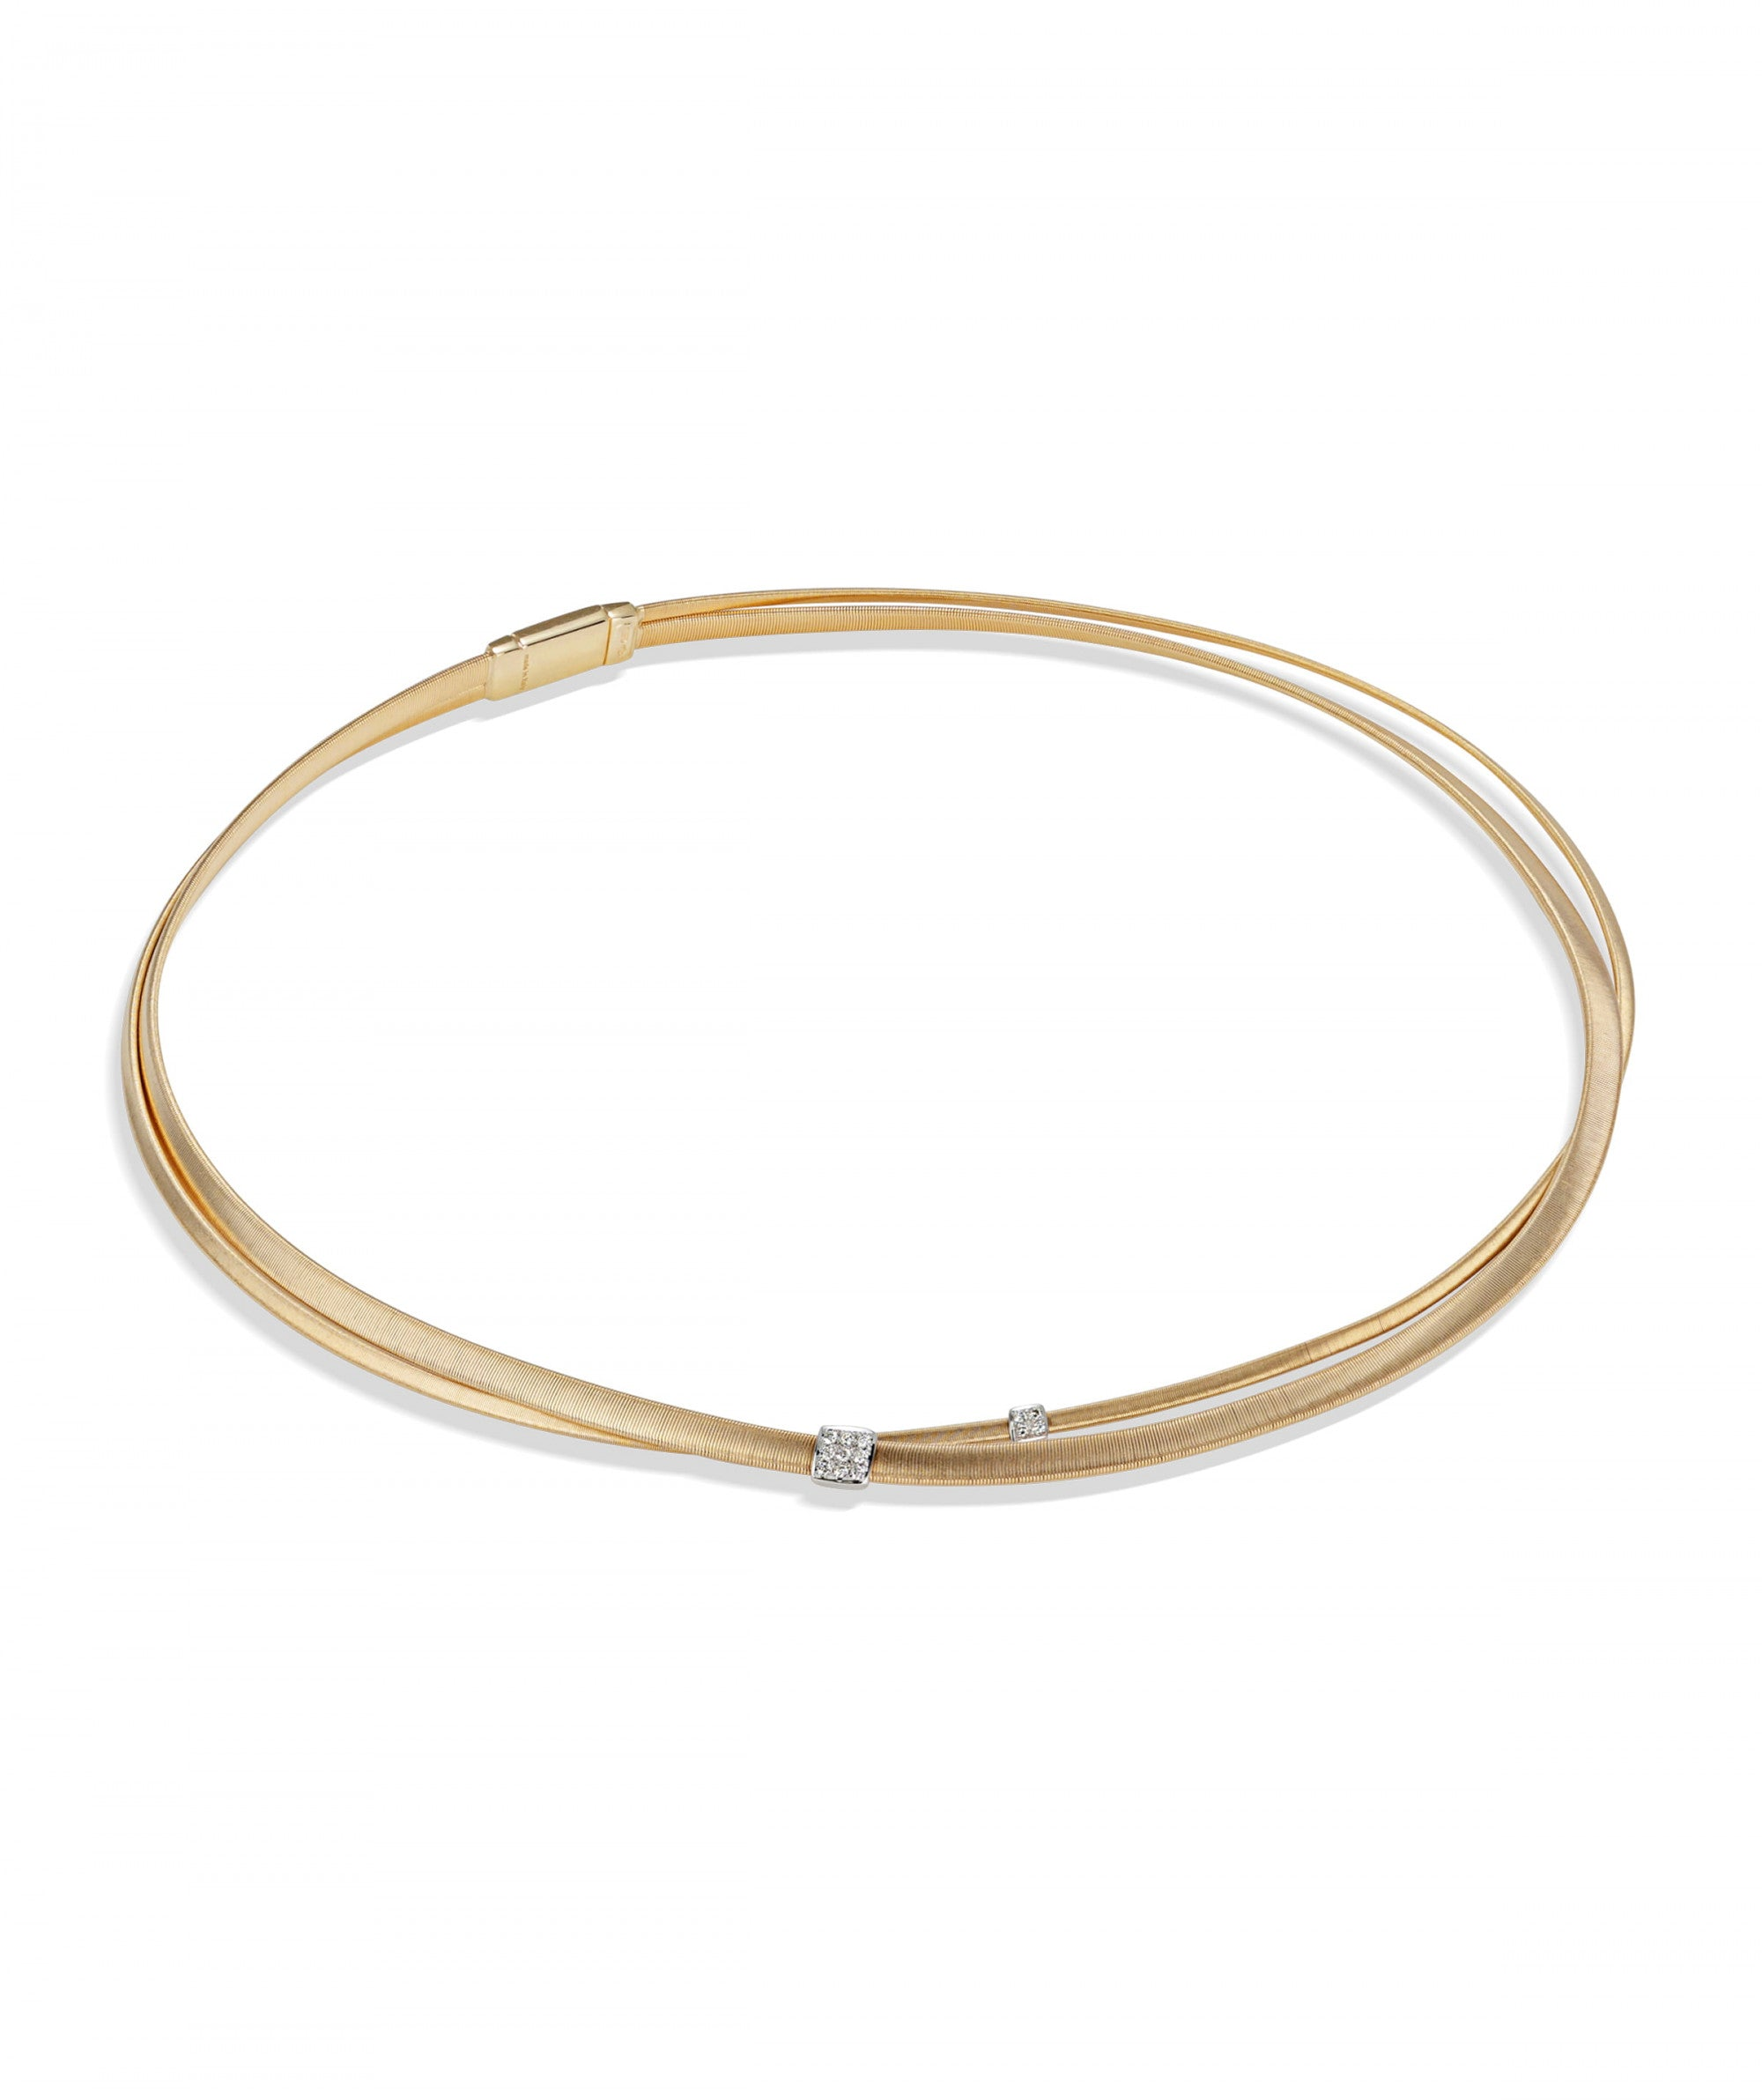 Masai Necklace in 18k Yellow Gold and White Gold with Diamonds Two Strand - Orsini Jewellers NZ